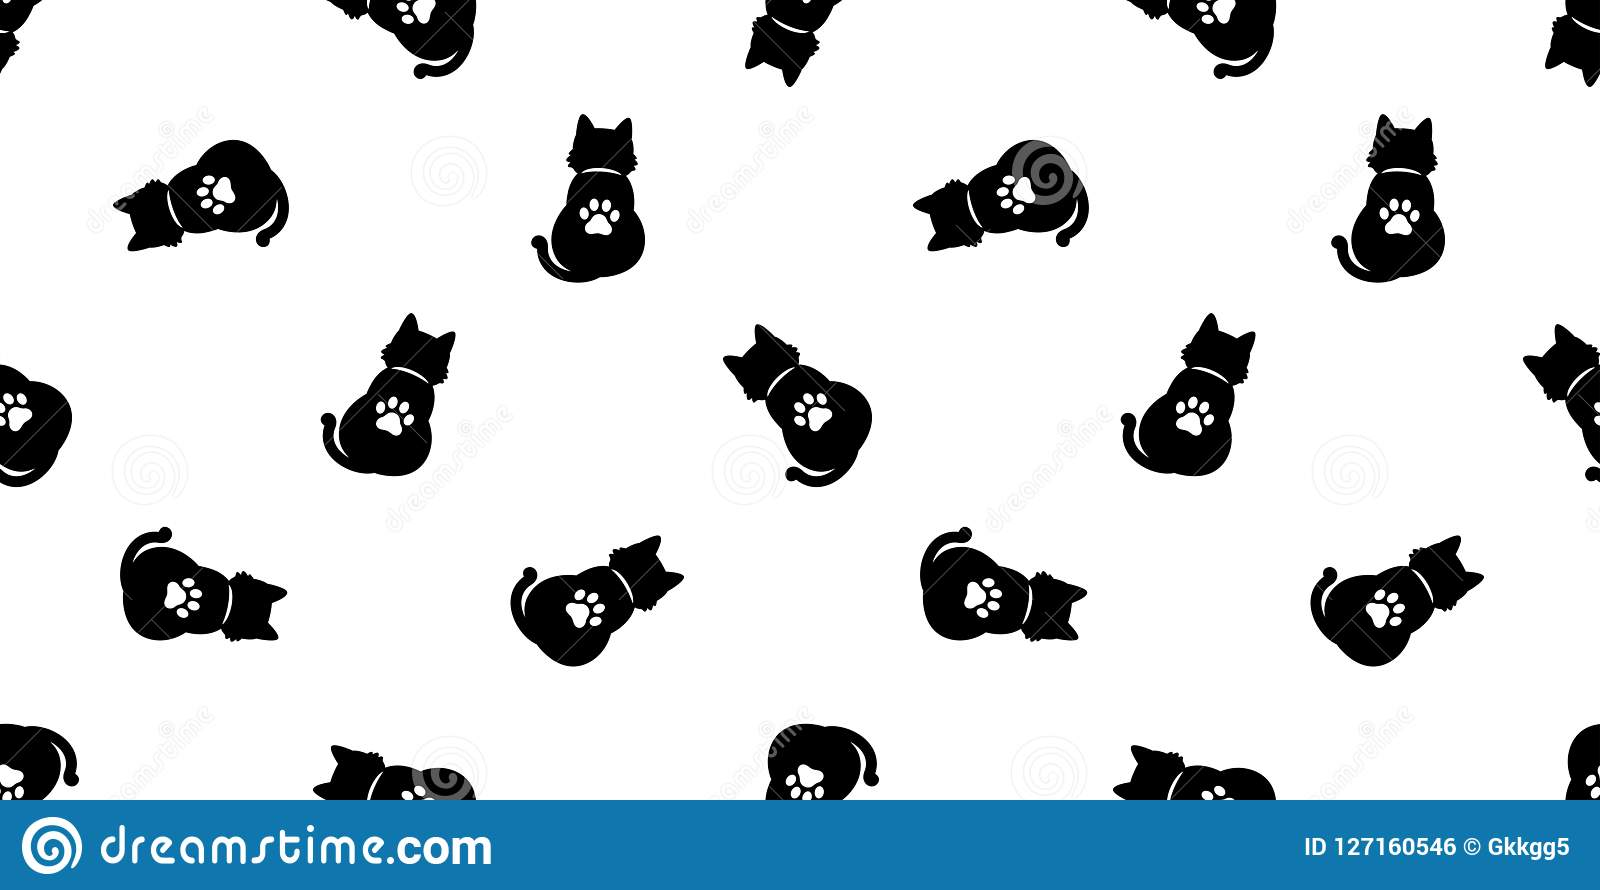 Cat Seamless Pattern Vector Paw Halloween Kitten Calico Cartoon Scarf Isolated Tile Background Repeat Wallpaper Stock Vector Illustration Of Calico Background 127160546